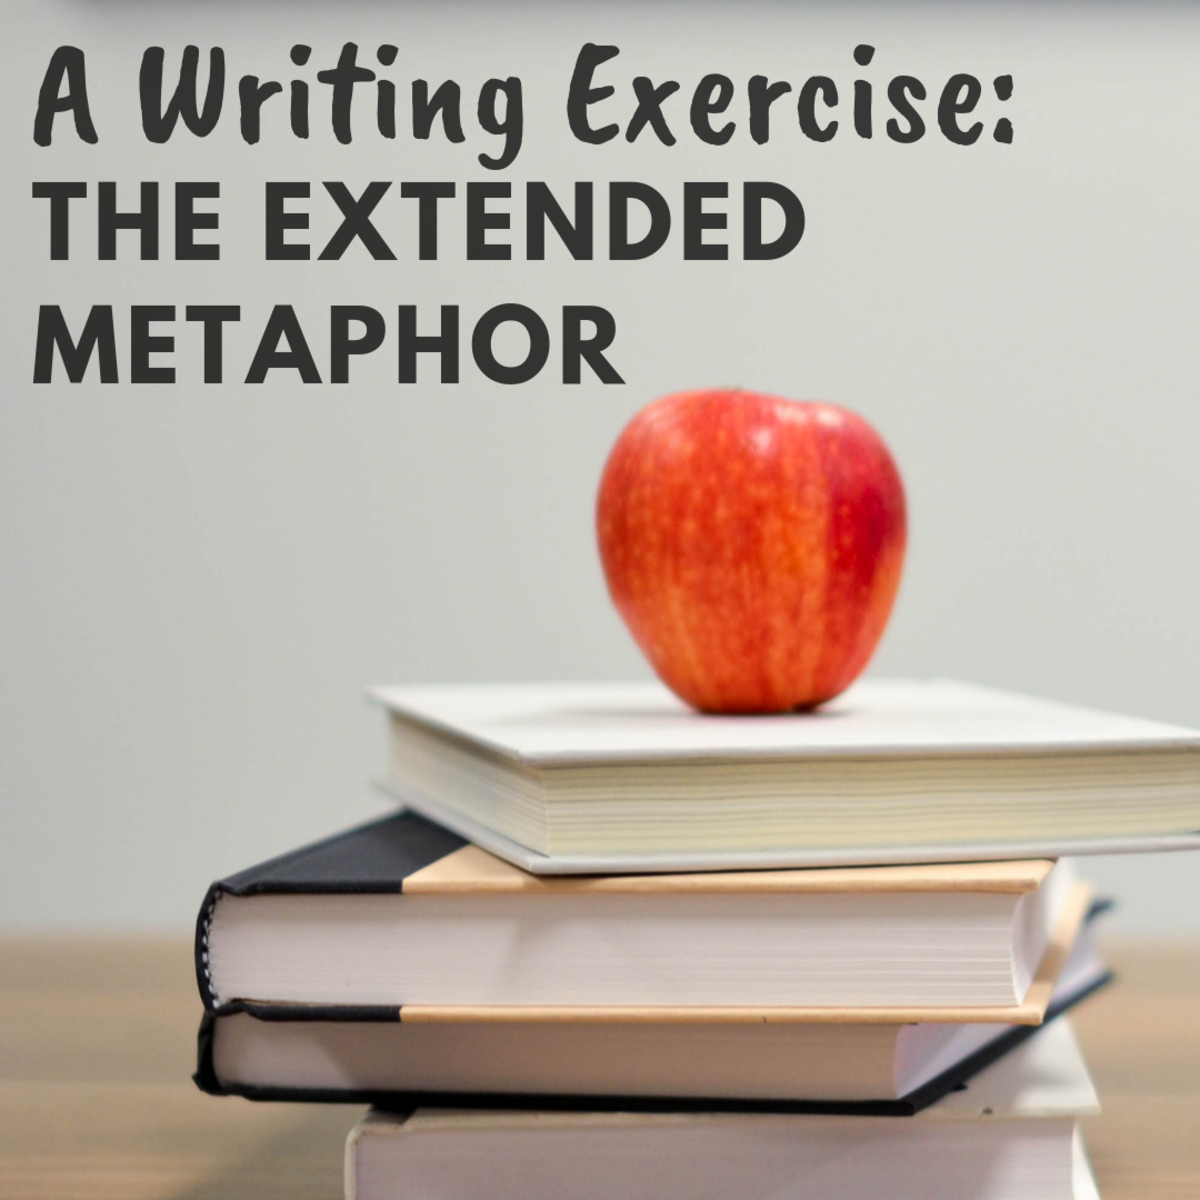 Observing Life as a Metaphor: A Writing Exercise